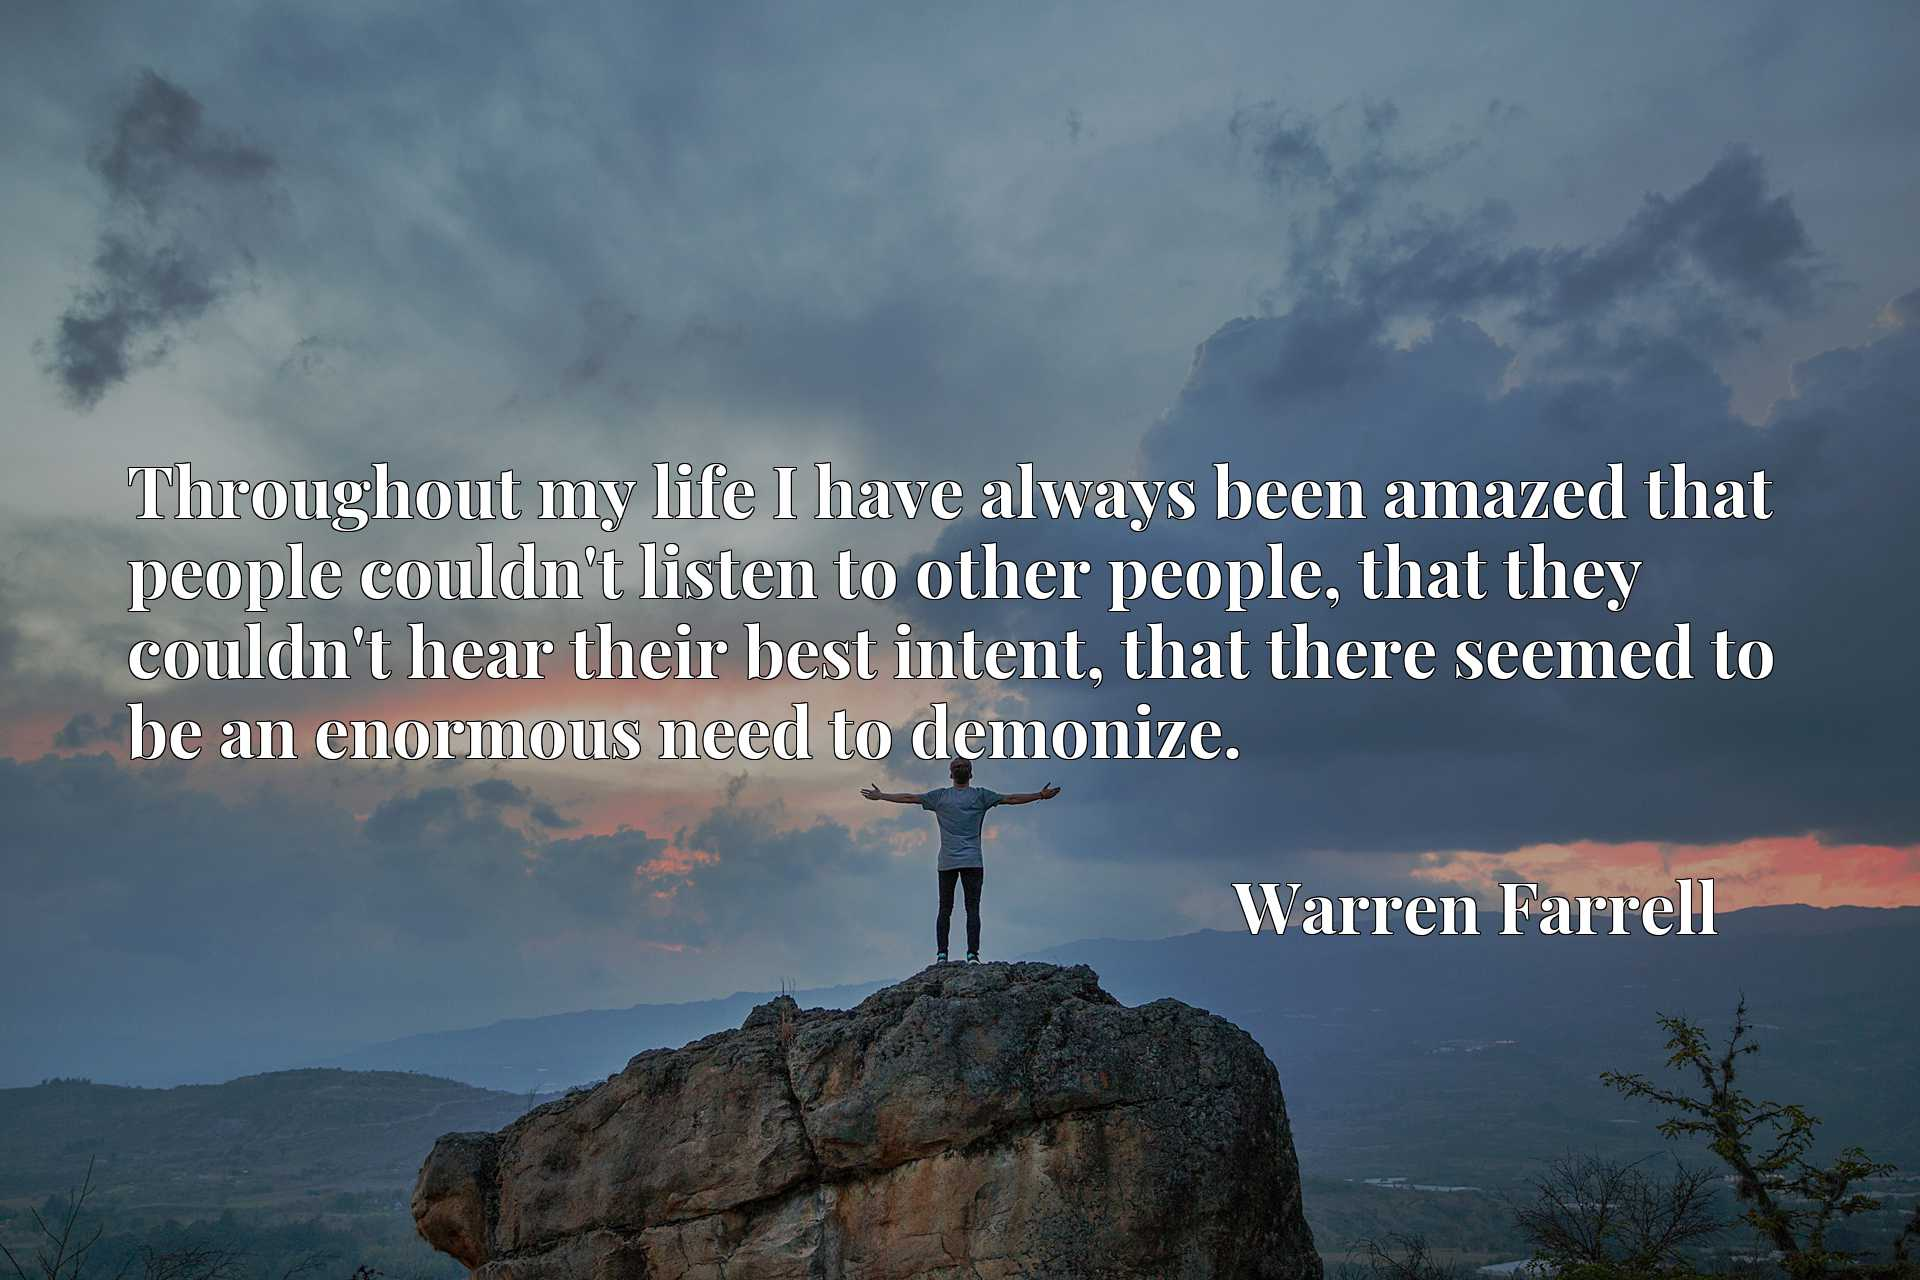 Throughout my life I have always been amazed that people couldn't listen to other people, that they couldn't hear their best intent, that there seemed to be an enormous need to demonize.